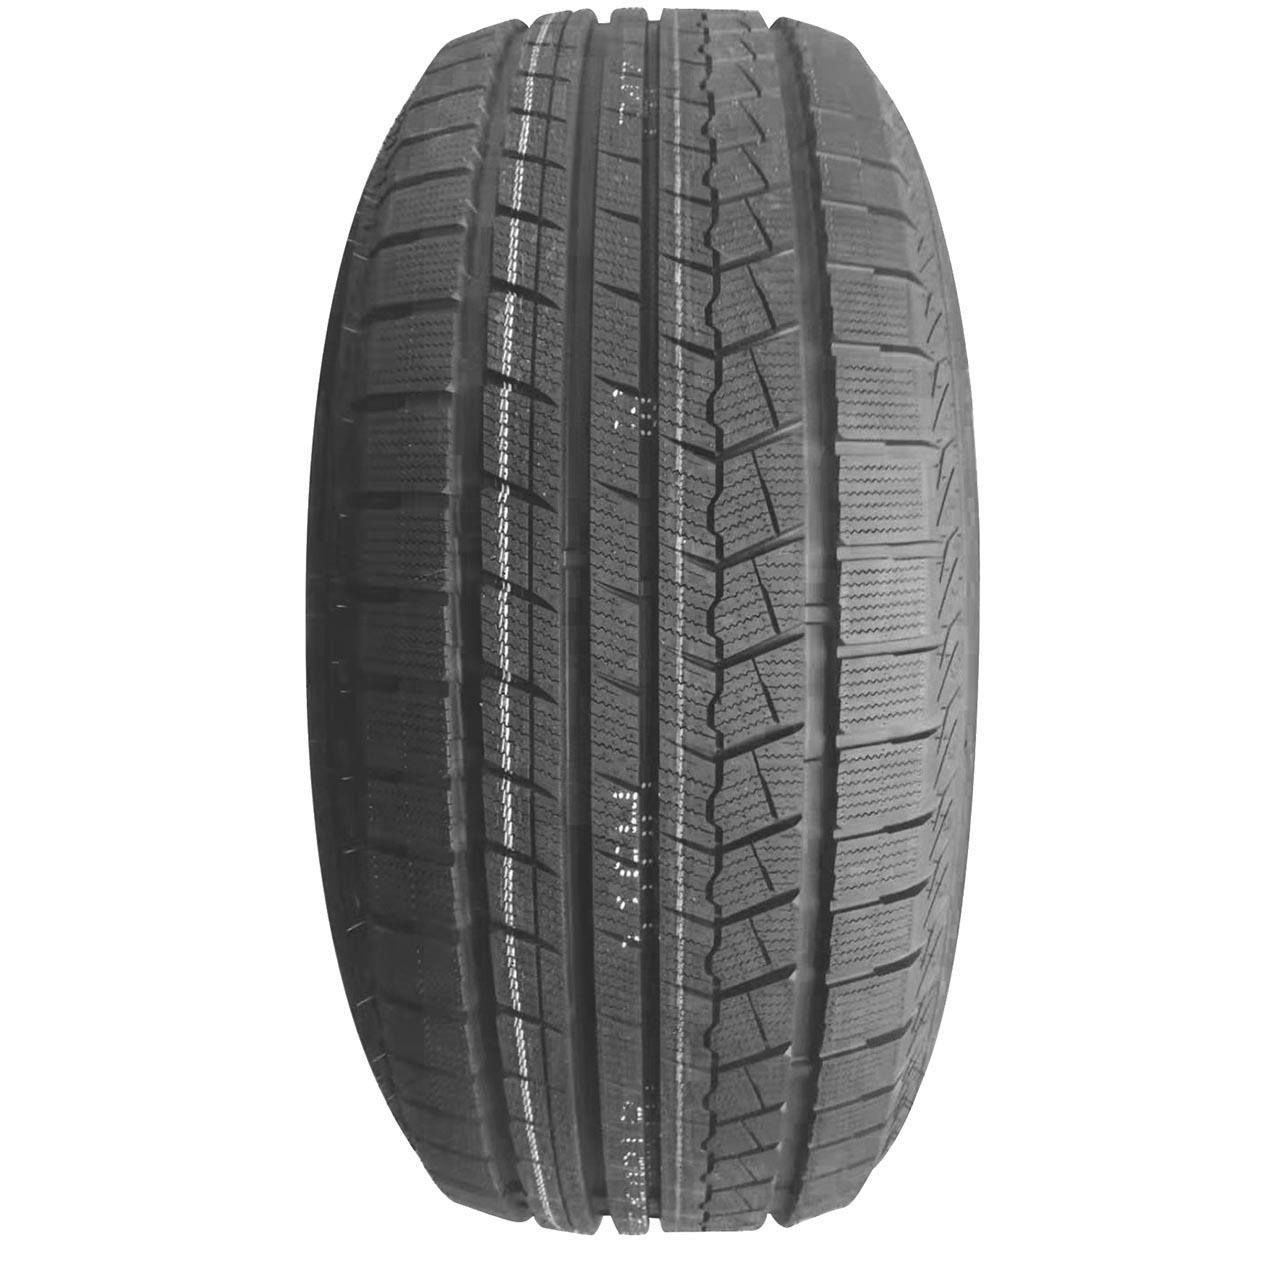 T Tyre Thirty TWO 205/55R16 94H XL